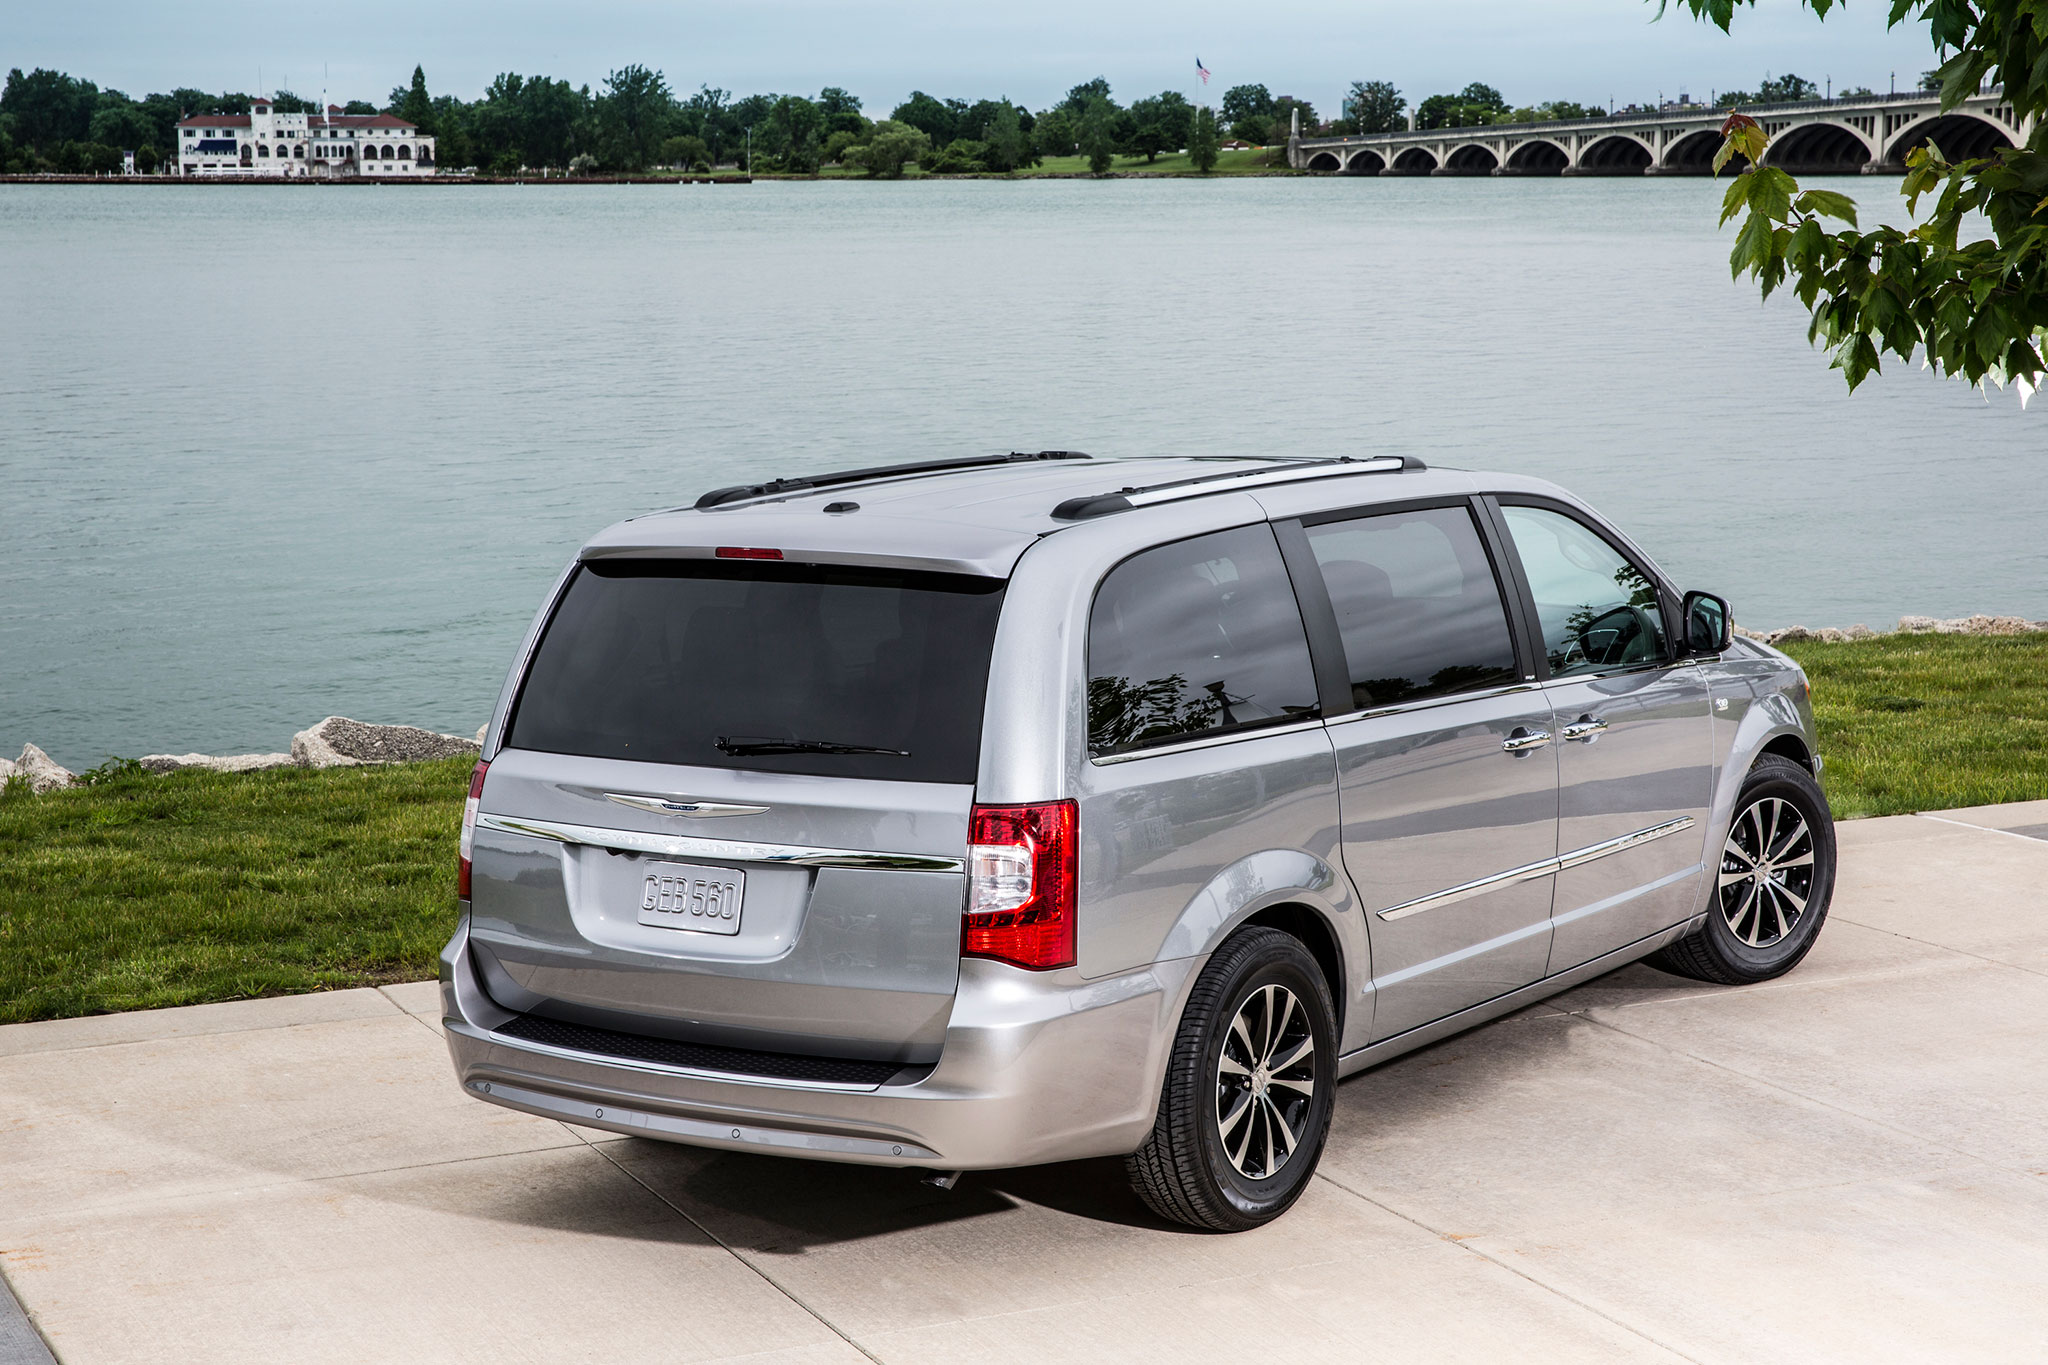 Recalls ford chevrolet buick fiat chrysler and dodge for 1999 chrysler town and country window problems